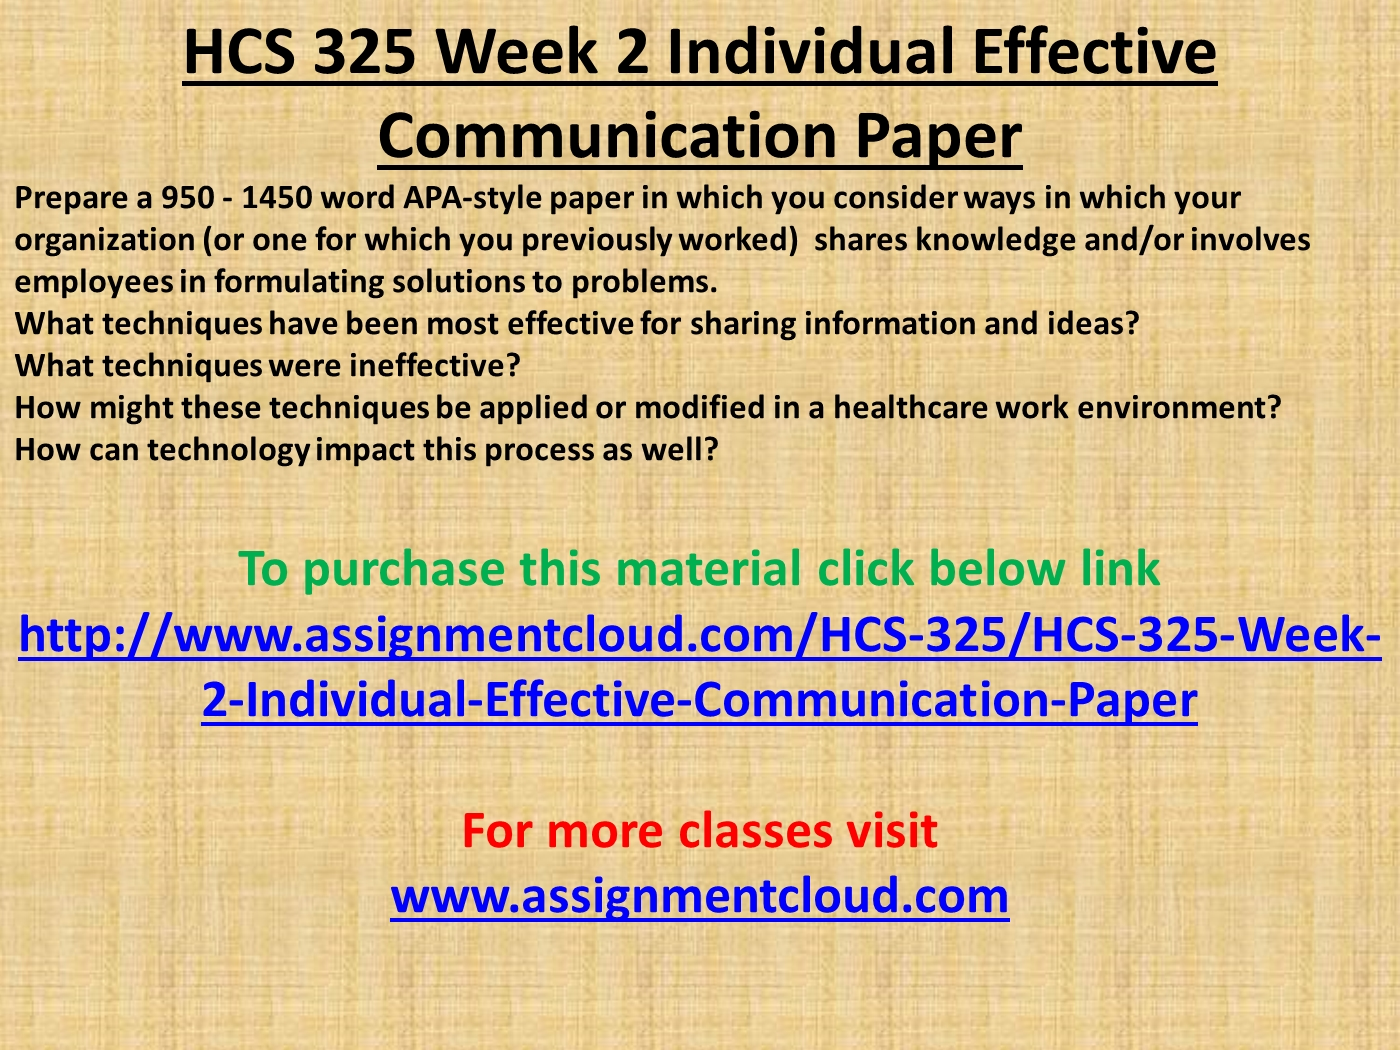 HCS  Week  Individual Effective Communication Paper PowerPoint Slide Big   Hcs  Week  Individual Effective Communication Paper